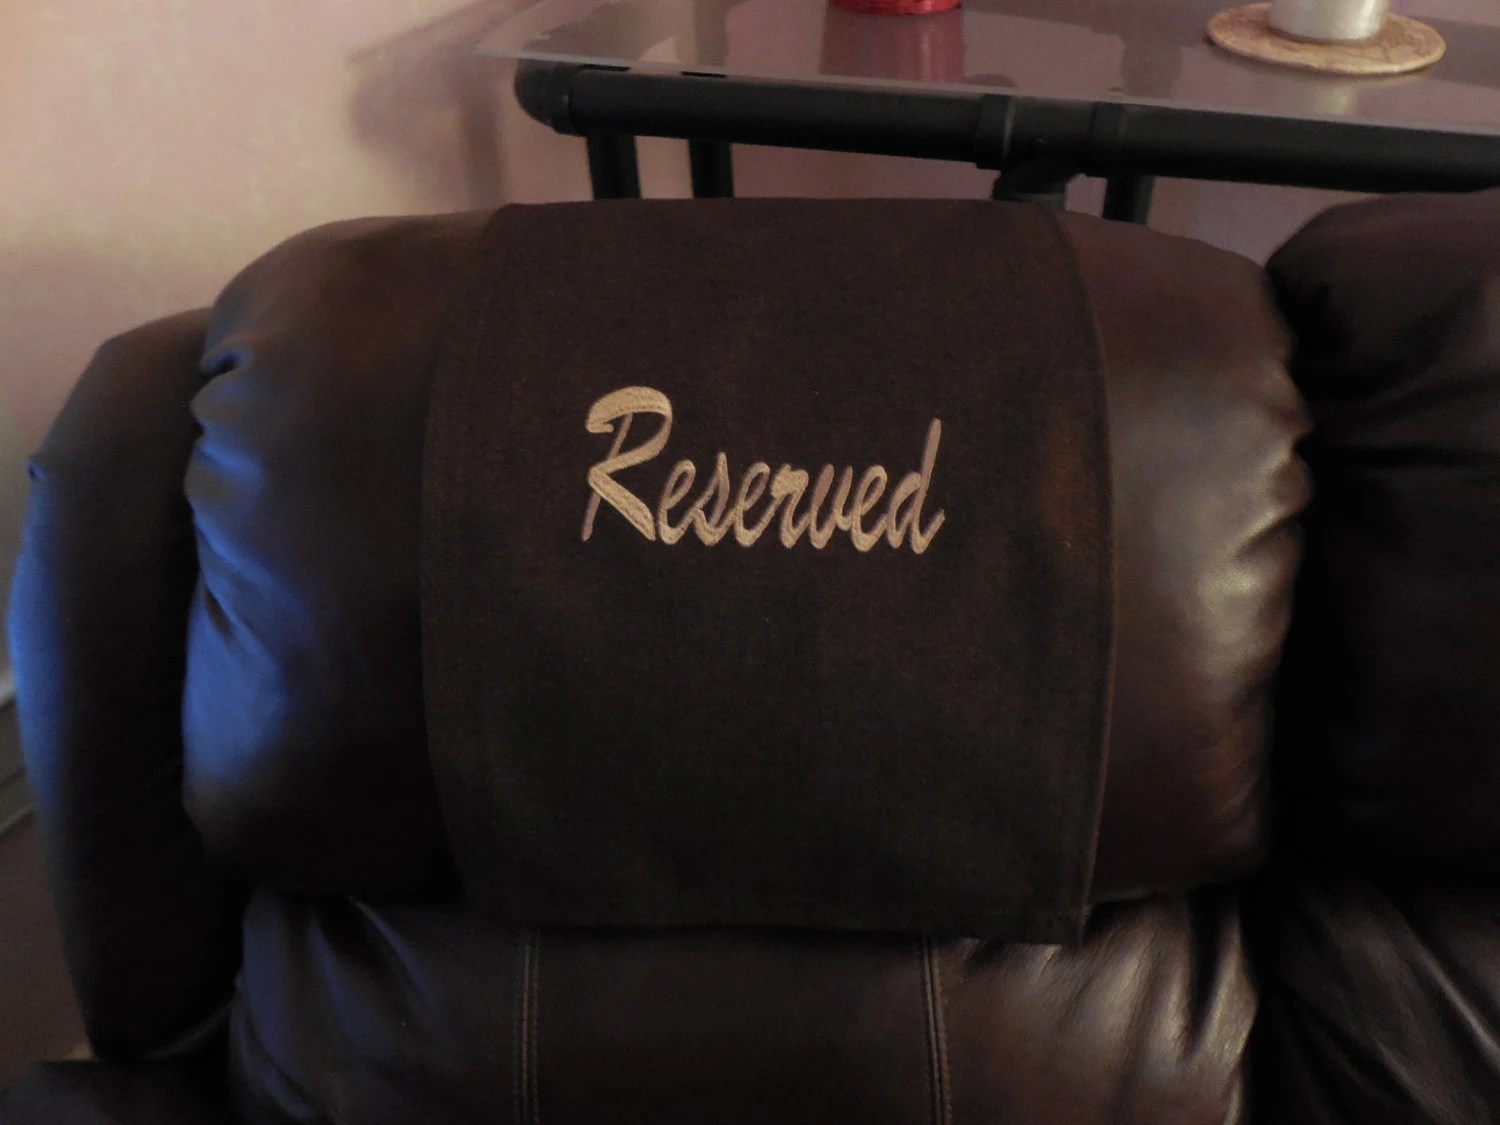 chair covers for headrest lunchroom chairs canada caps pads recliner hd by stitchnart